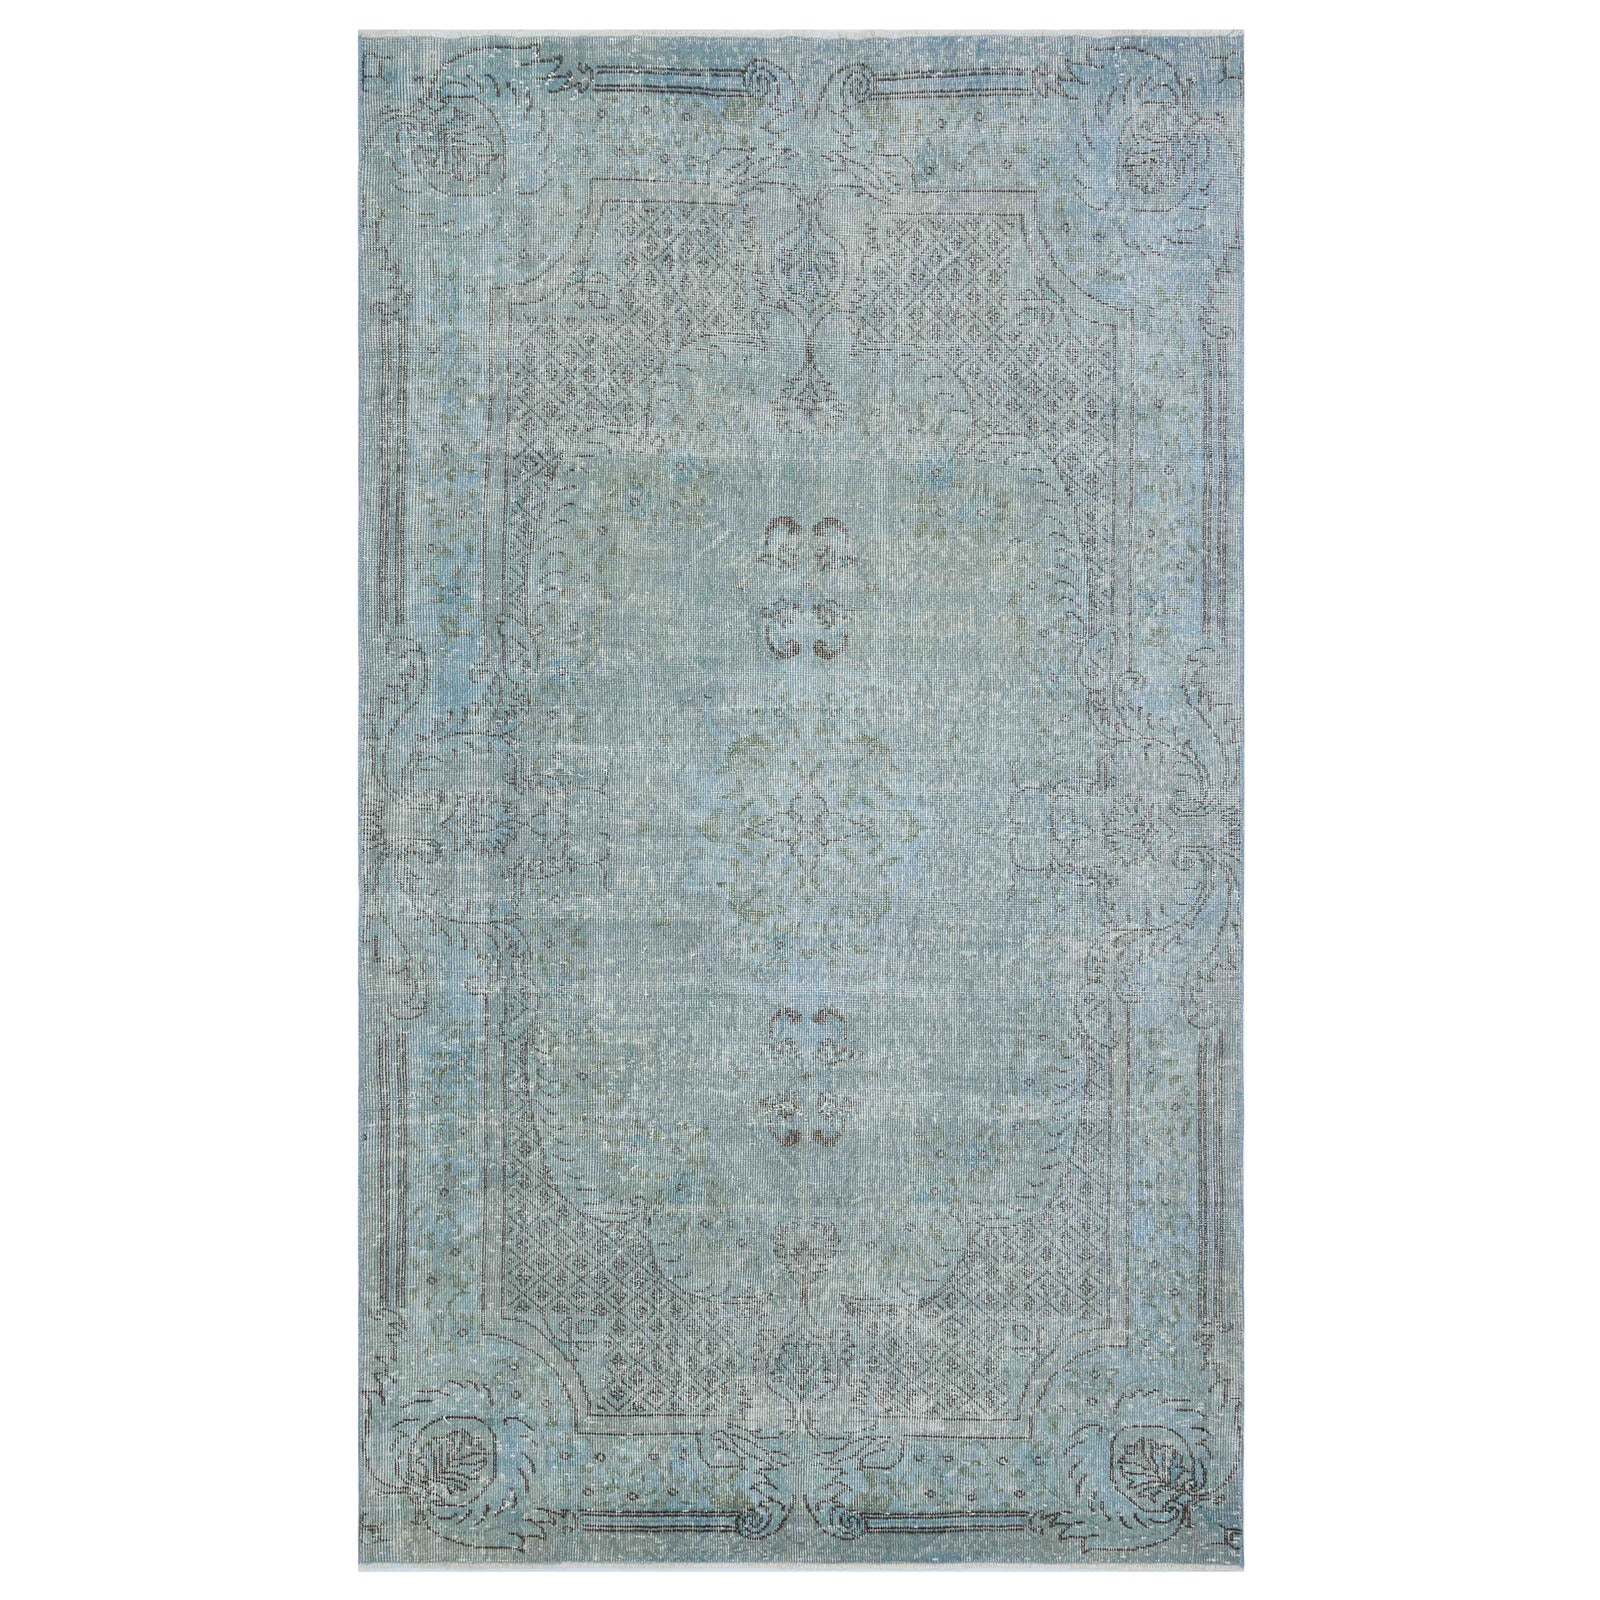 Hali 158X268 CM Bursa Handmade over dyed 1864